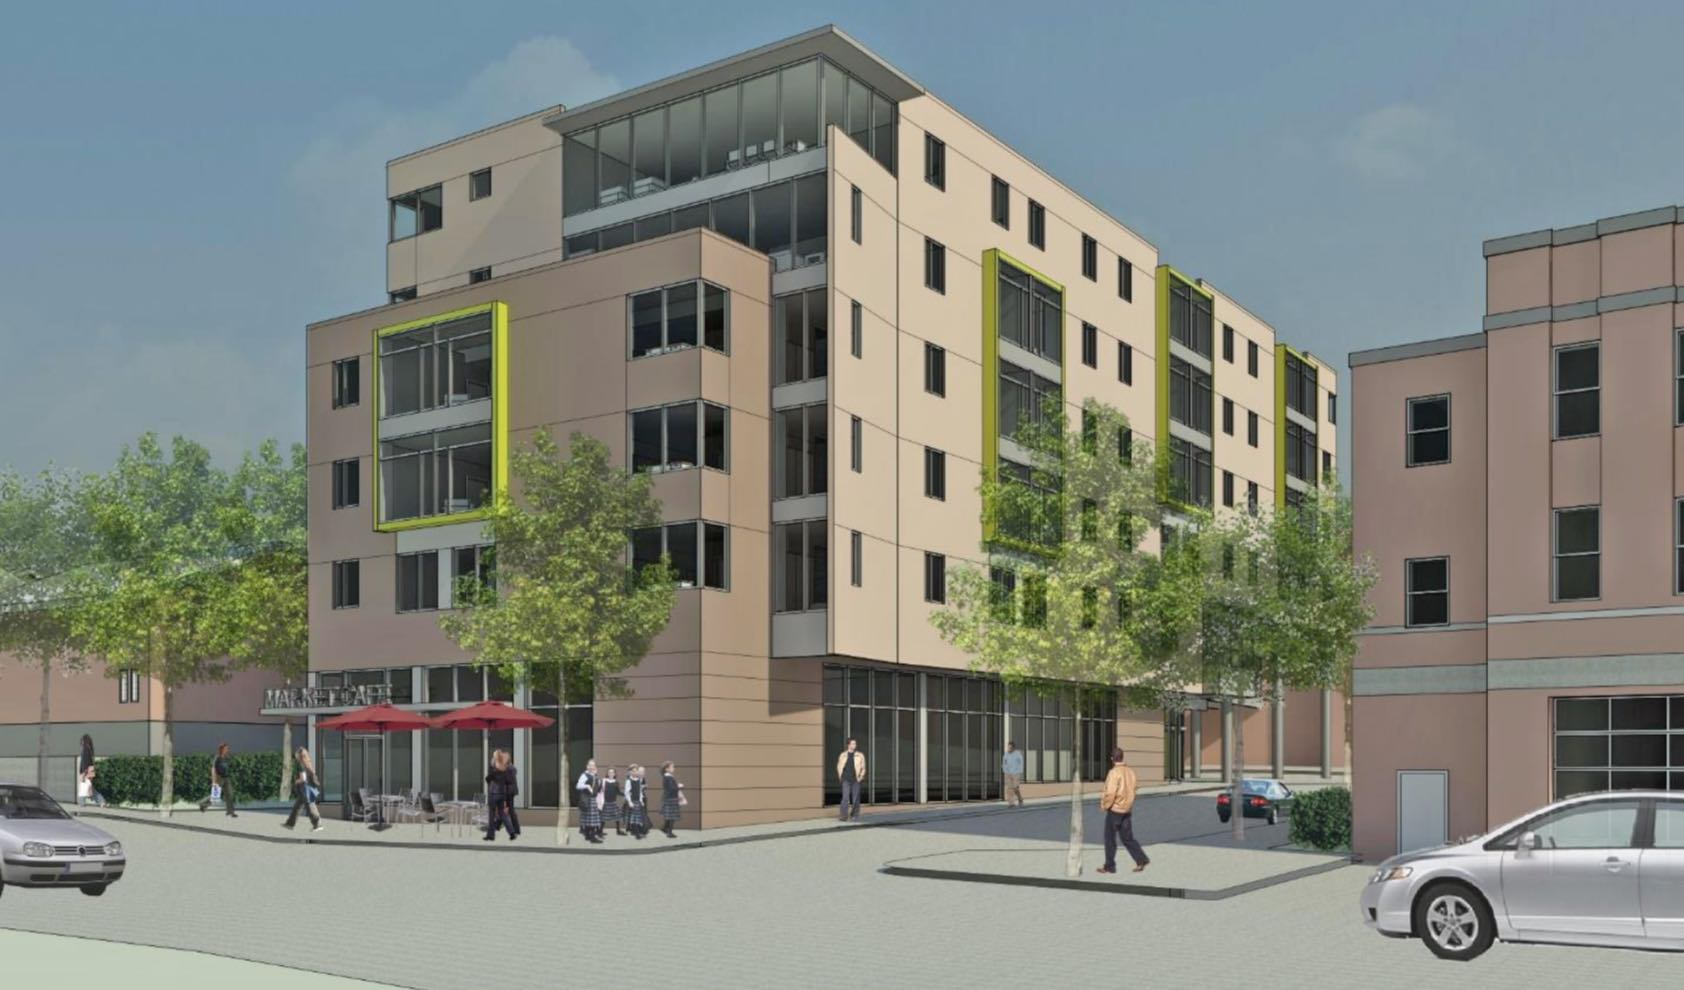 132 chestnut hill avenue residential affordable housing retail development jewish community housing for the elderly